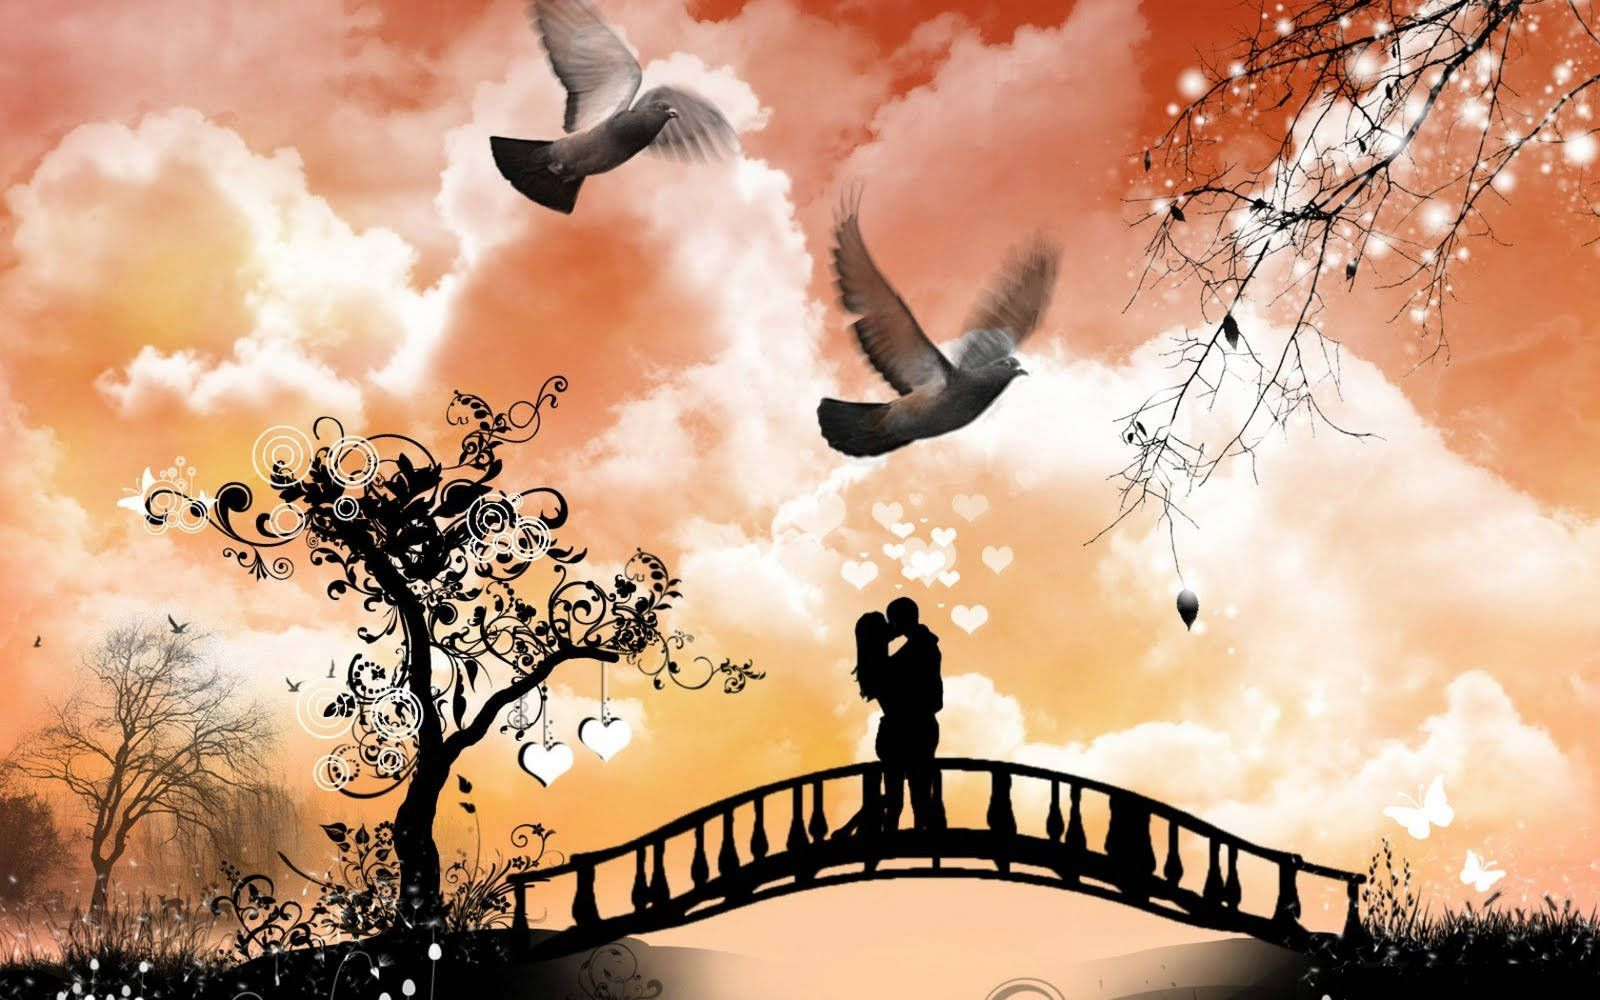 Cute Love Wallpapers For Mobile 1280x941 33